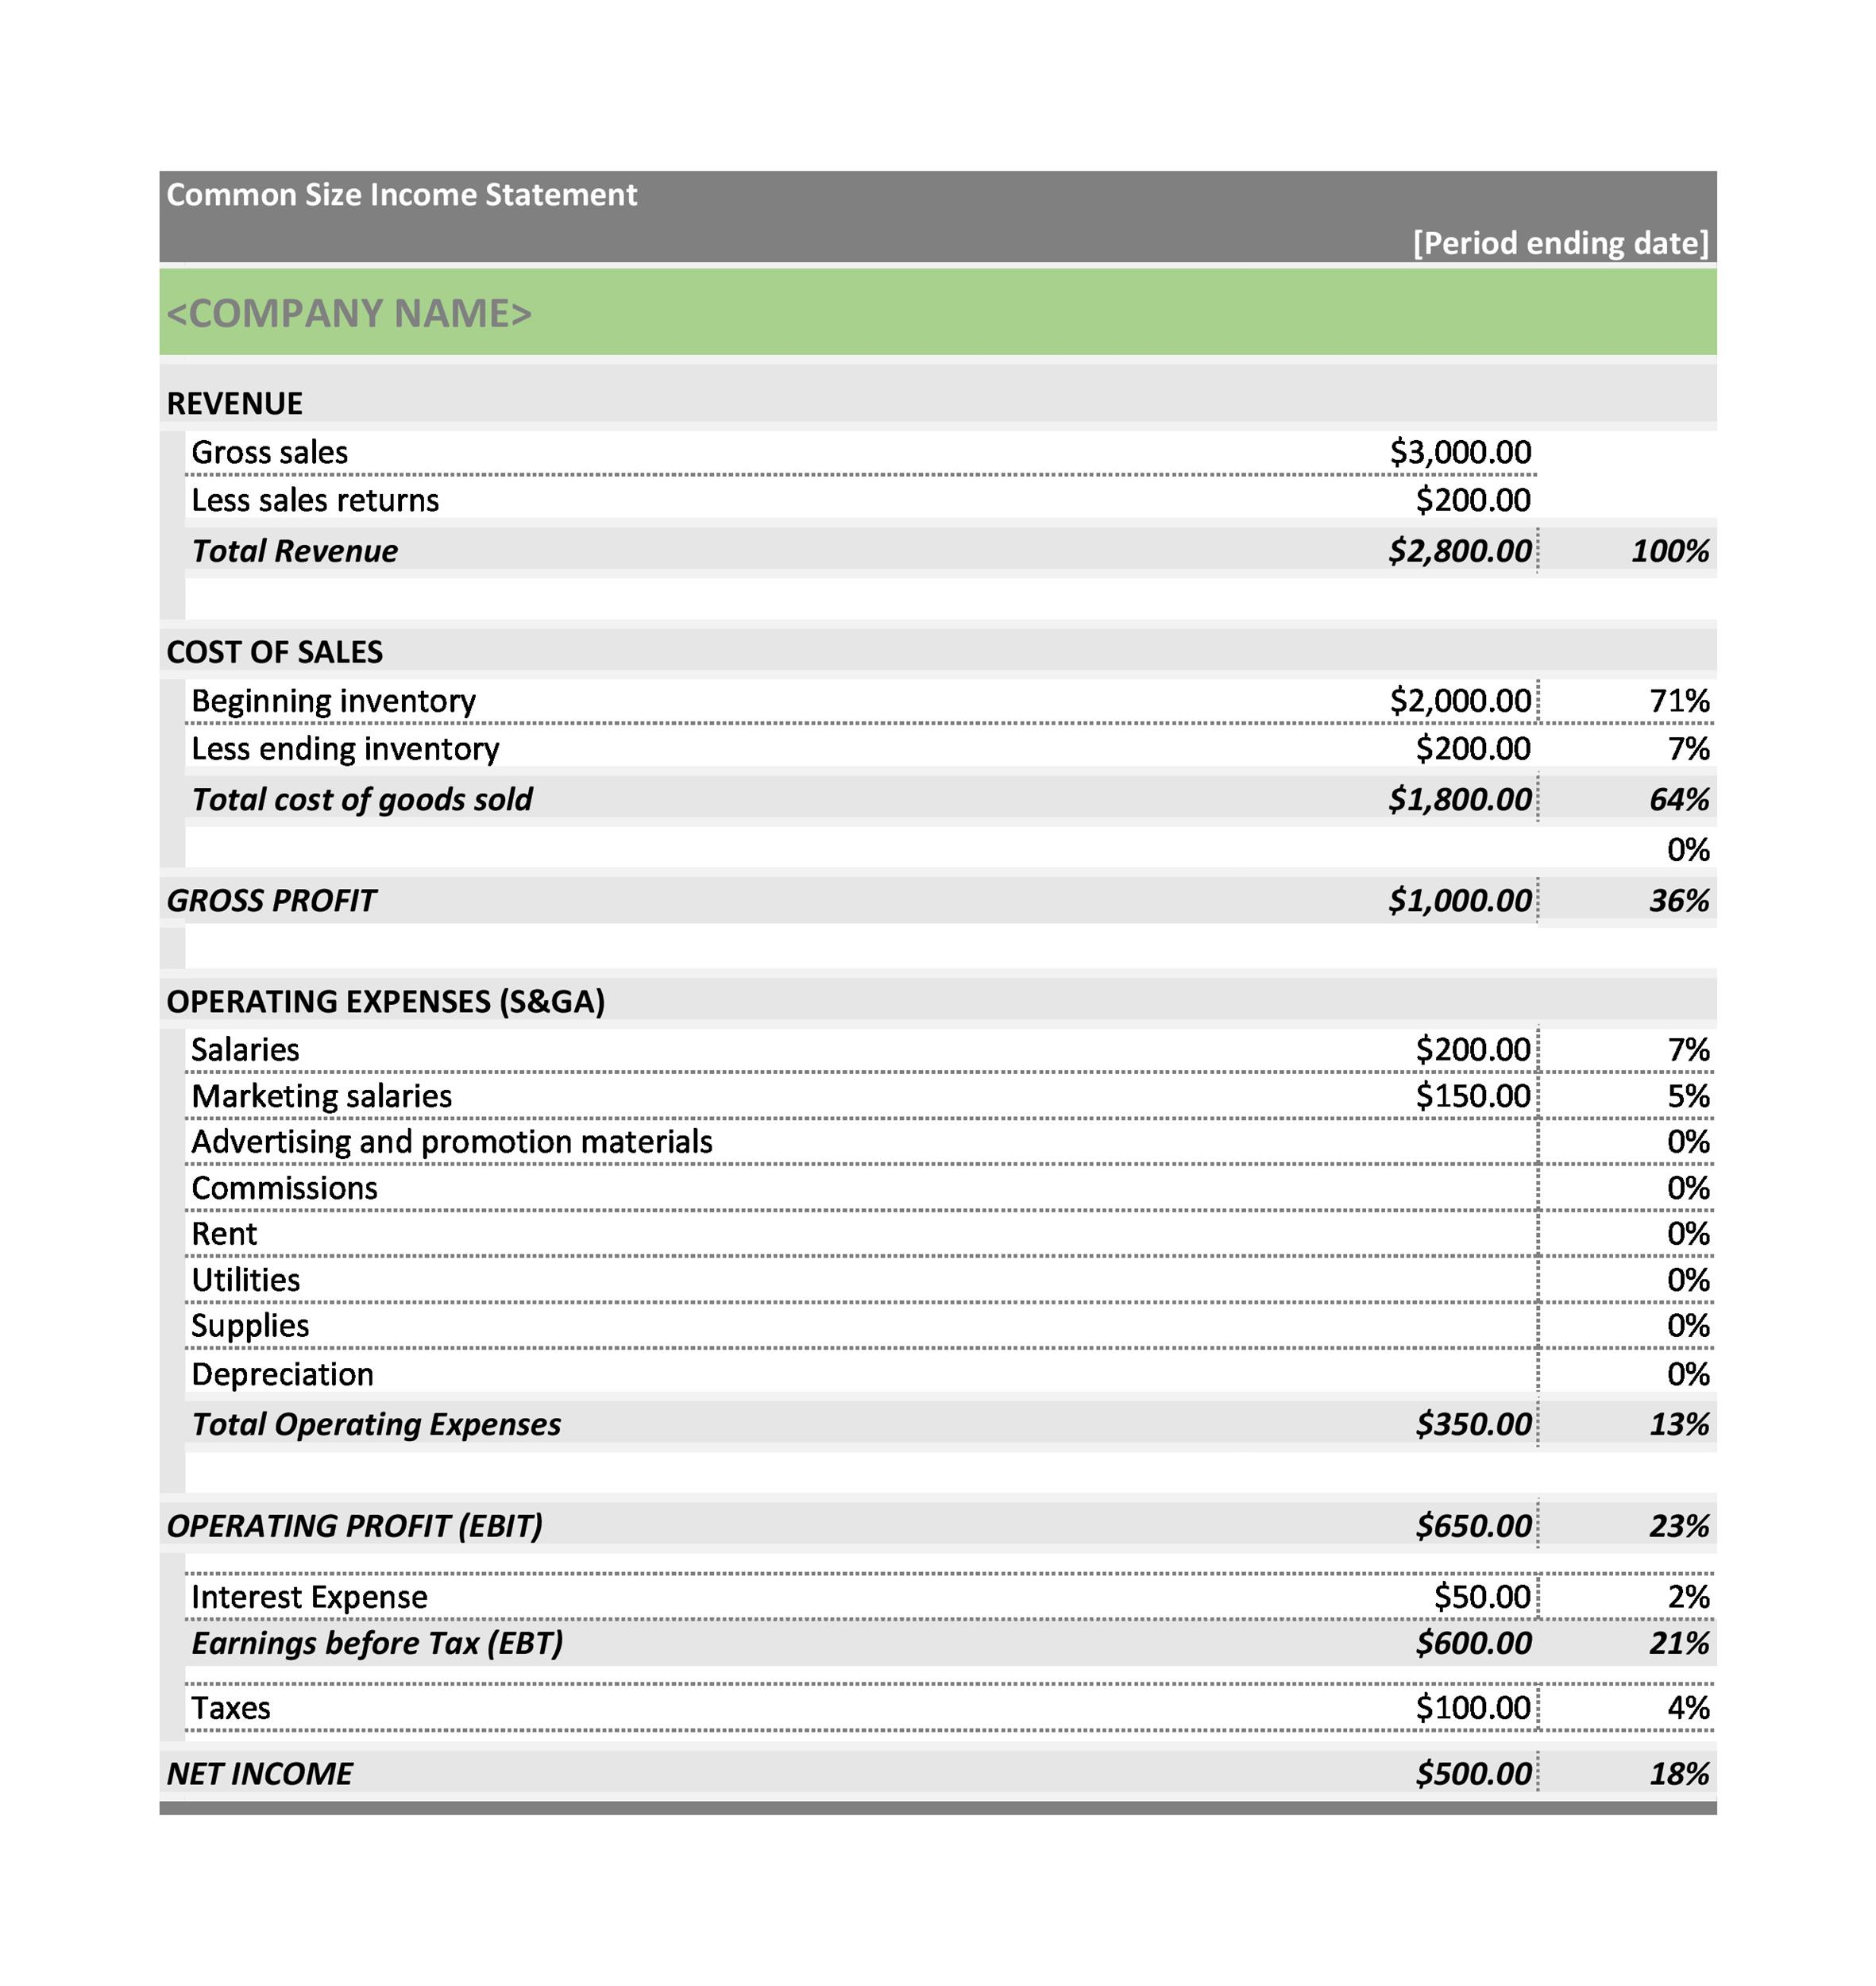 Free Common size Income Statement